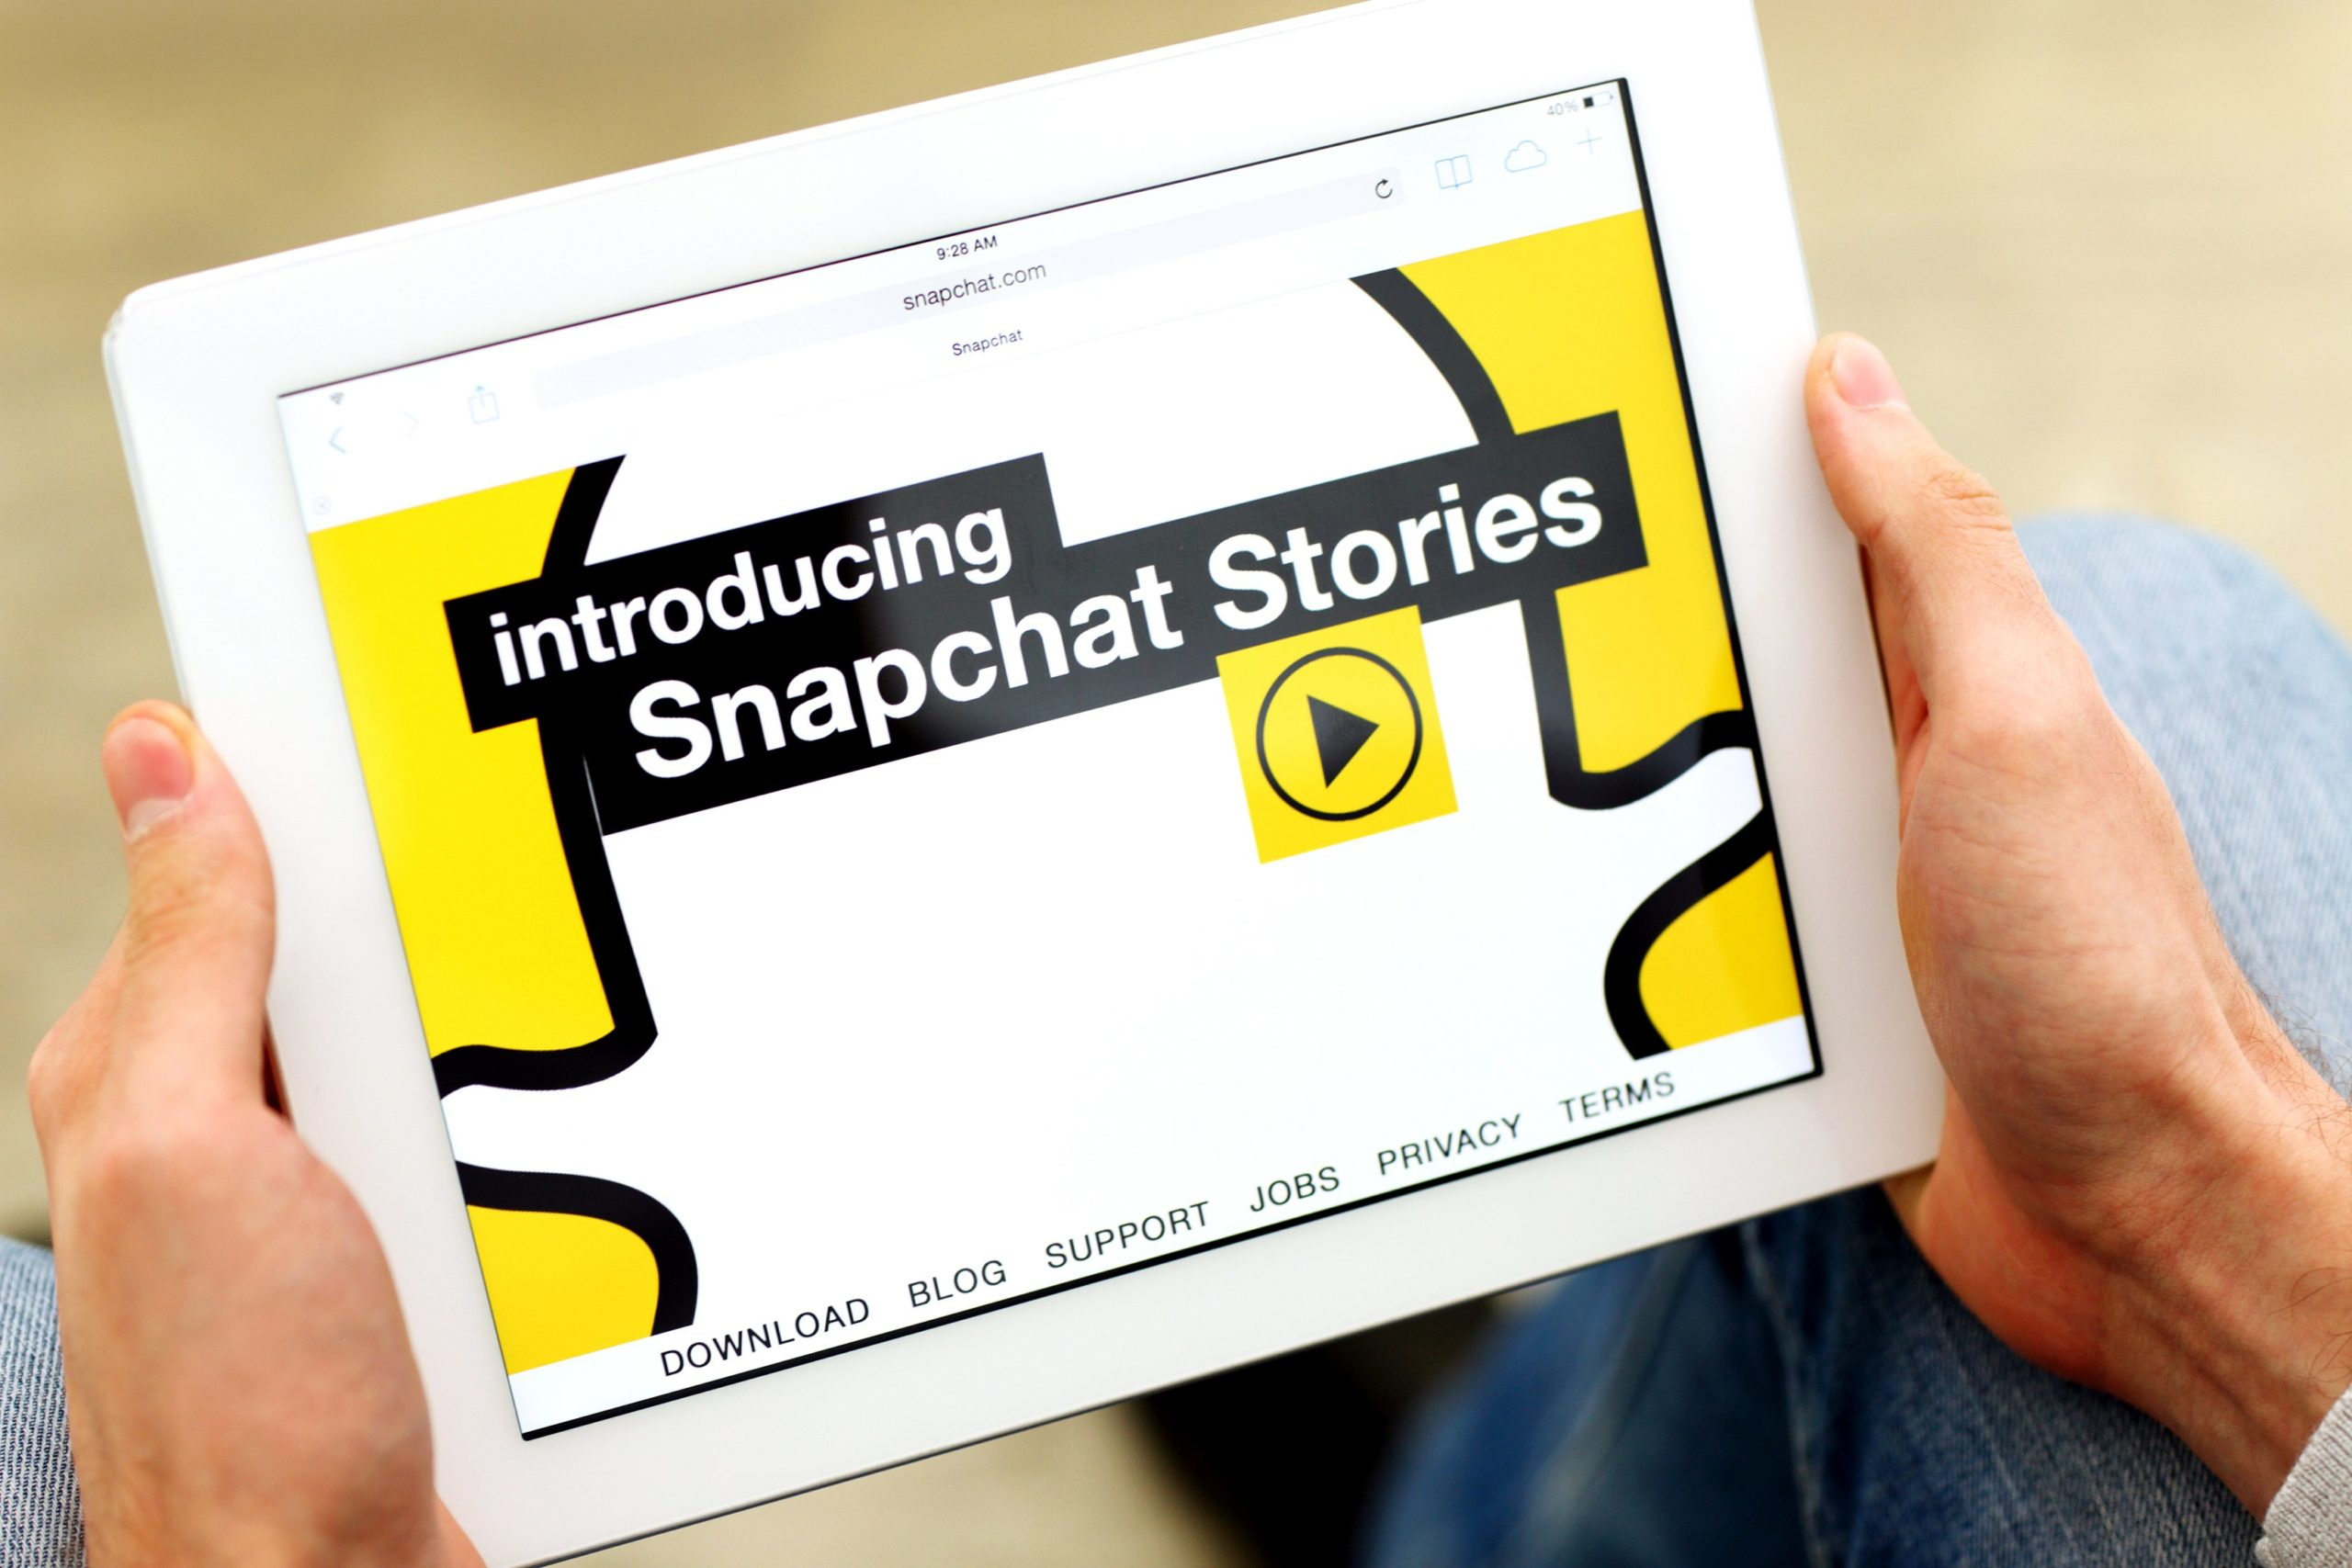 7 Things Marketers Need to Know About Snapchat